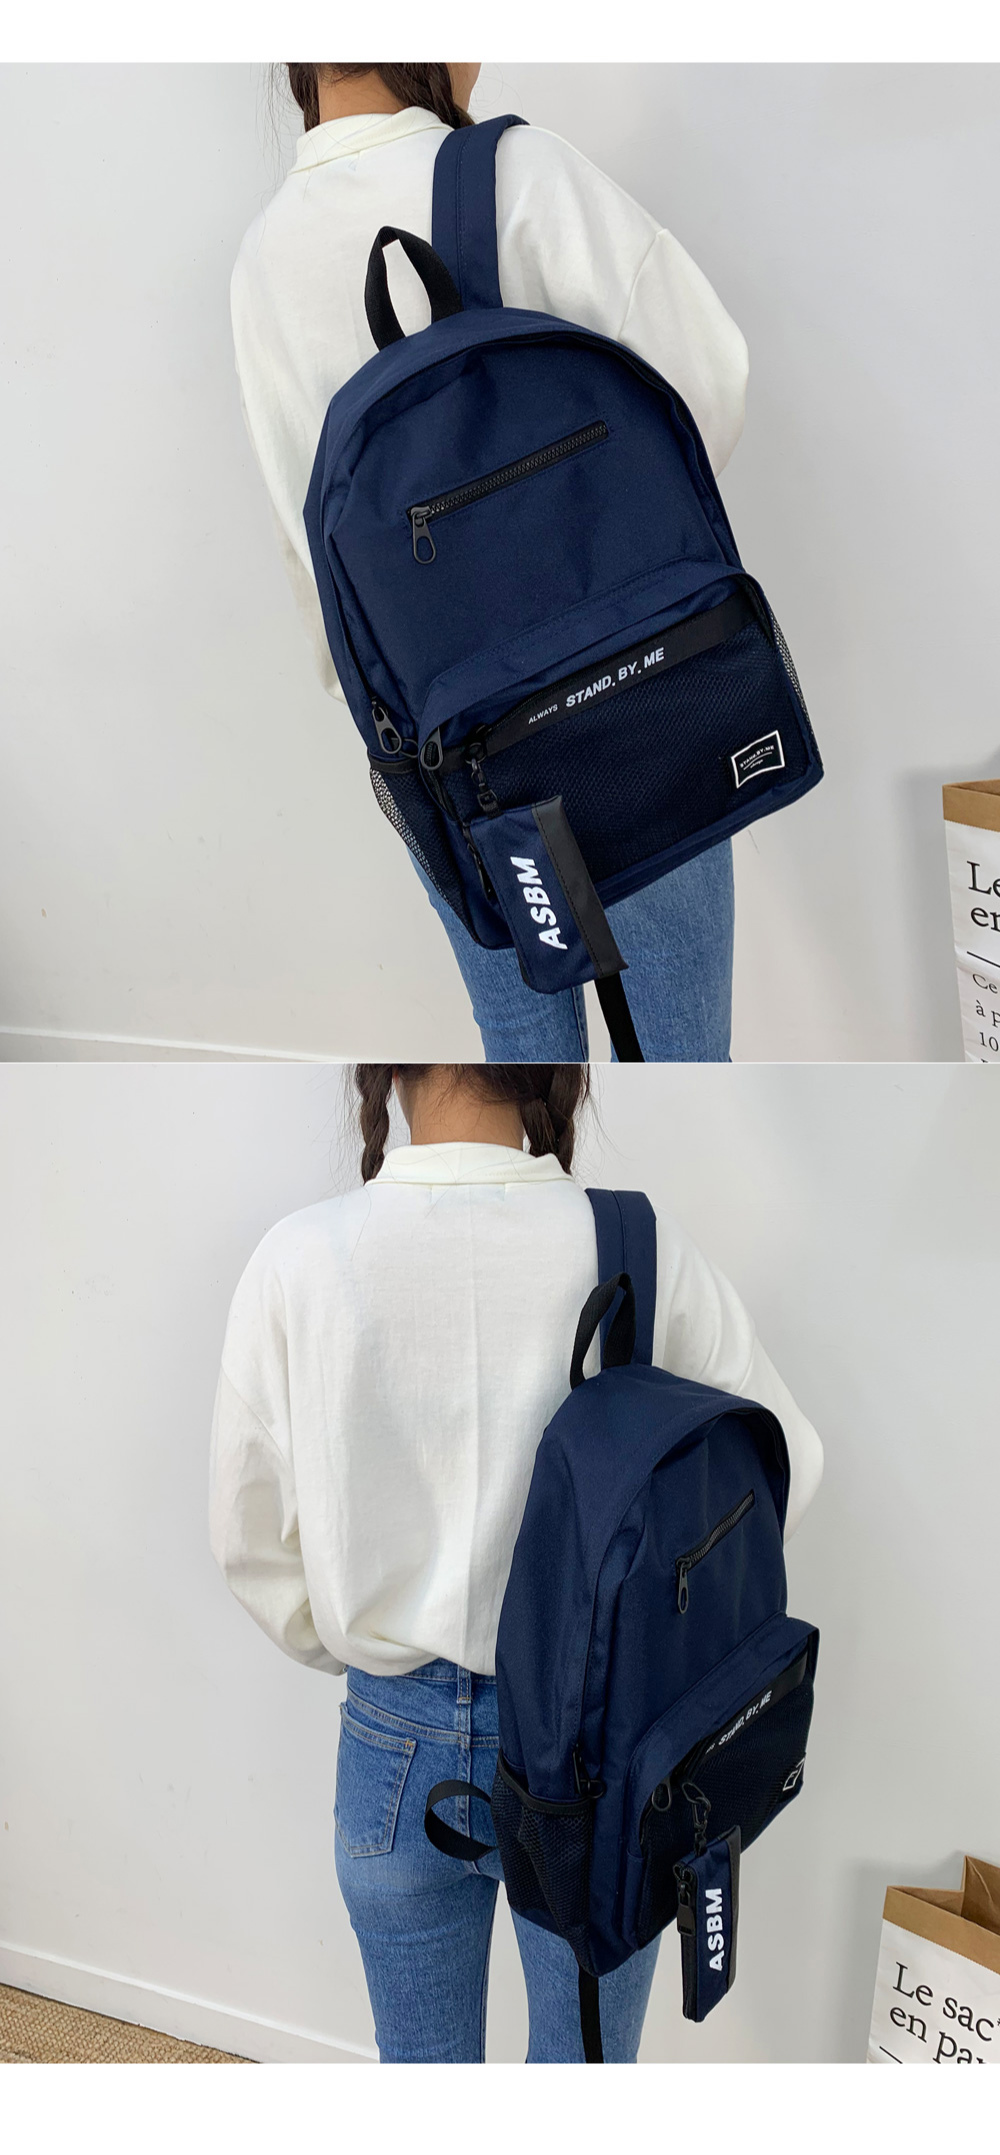 Switch backpack